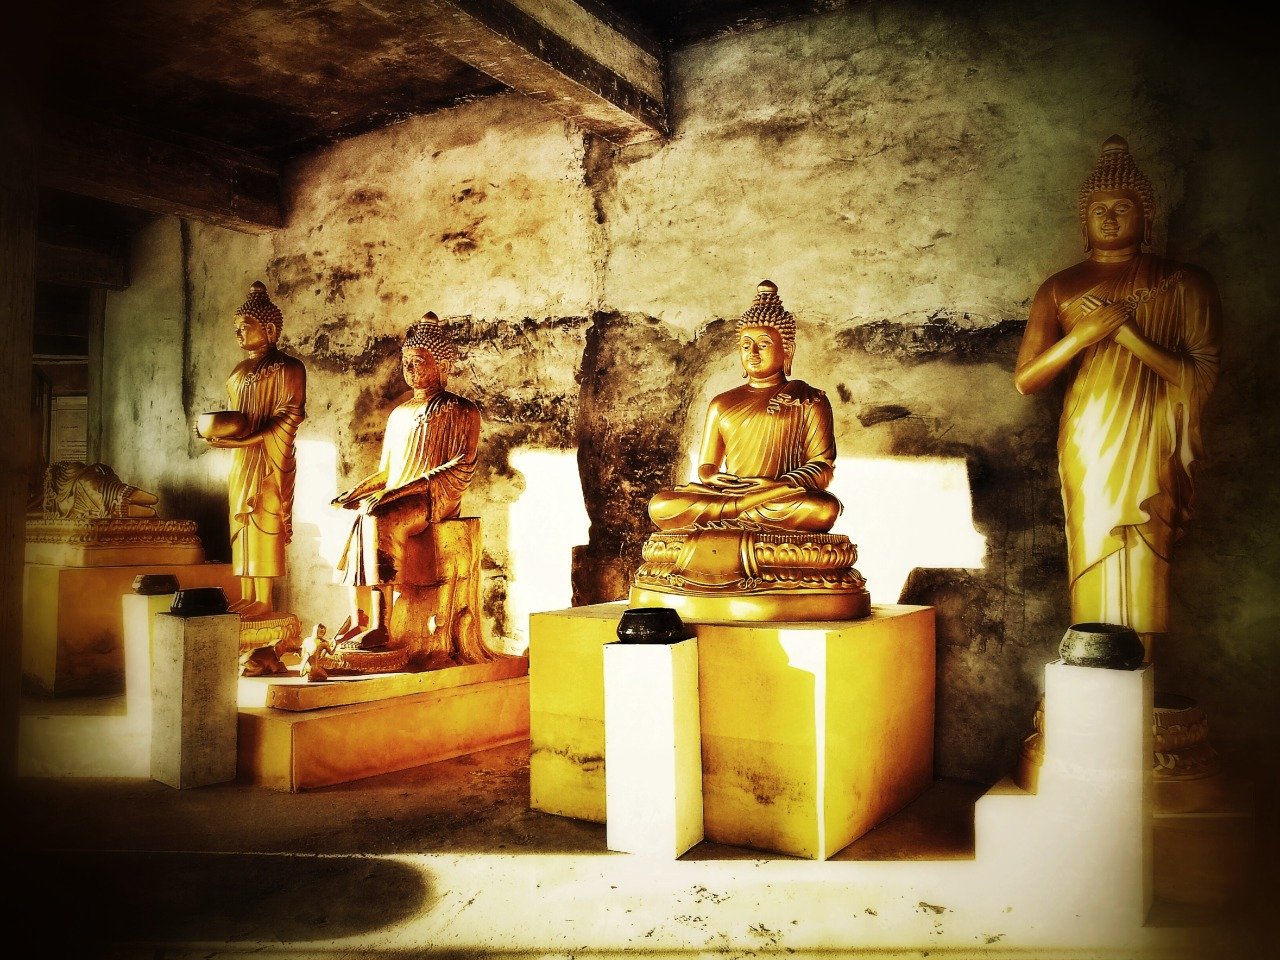 Buddha statues at Big Buddha Temple, Phuket  #snapseed #travel #buddha #phuket